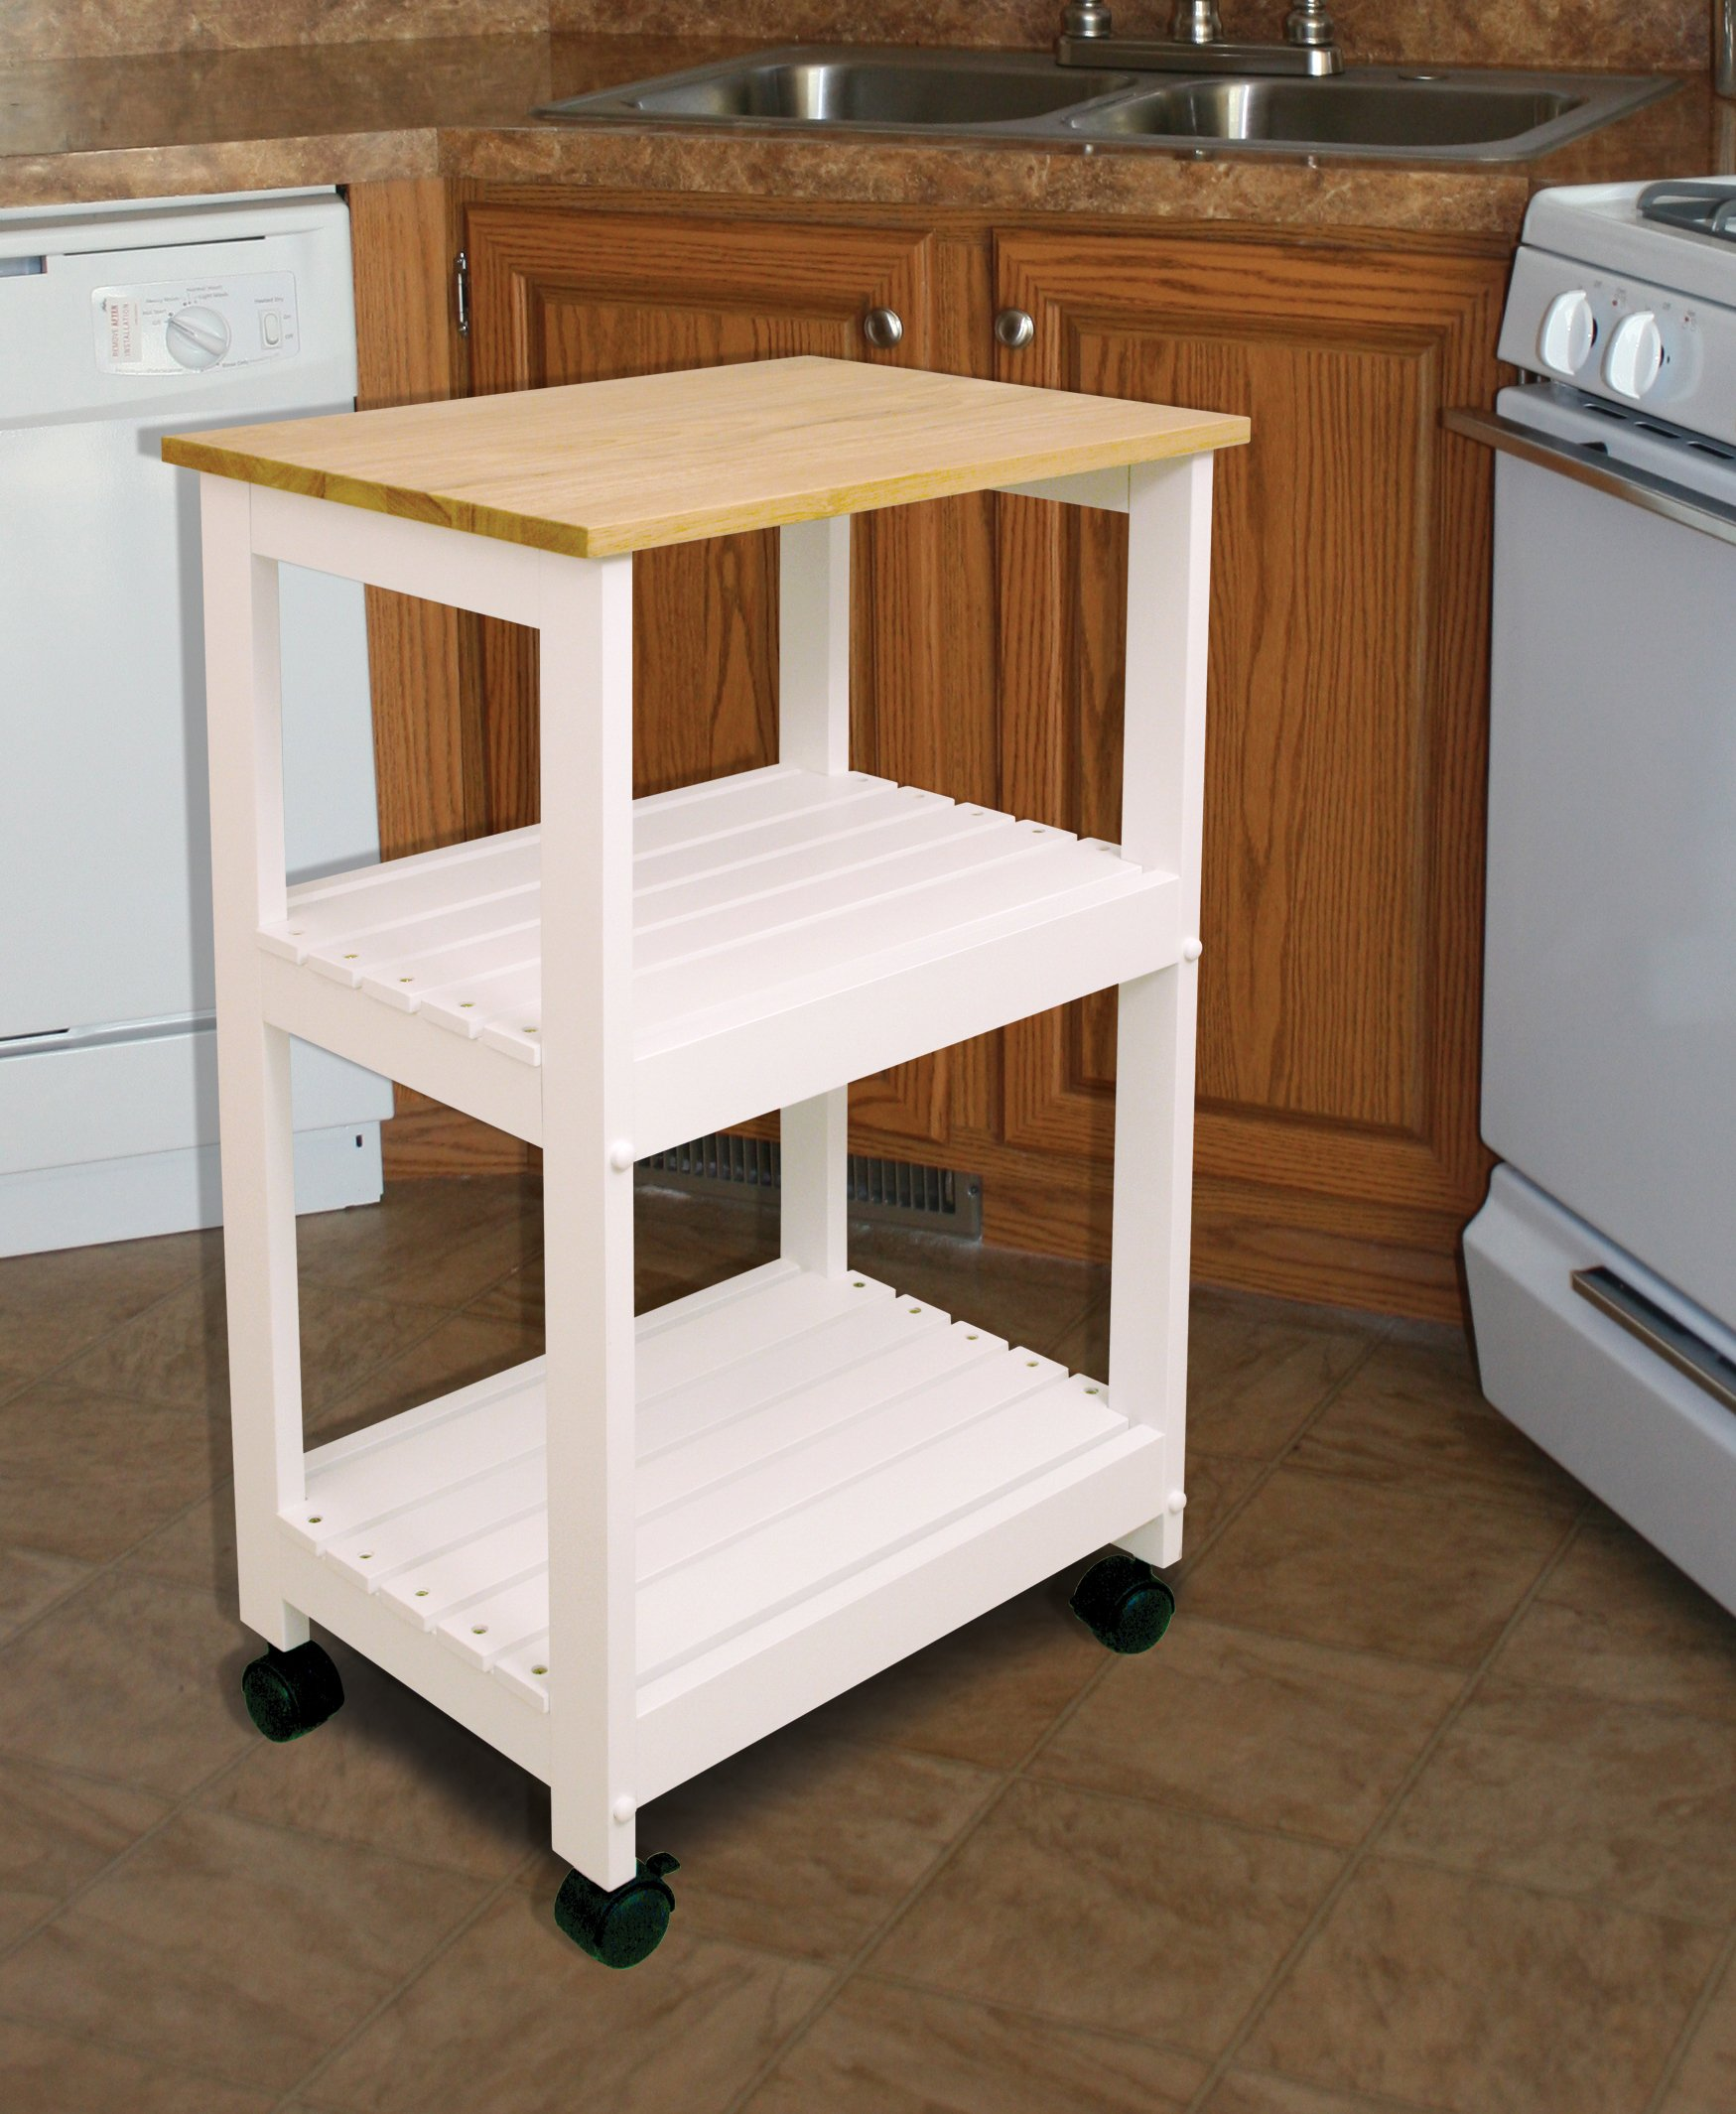 Catskill Craftsmen Utility Kitchen Cart/Microwave Stand, White Base with Natural Top by Catskill Craftsmen (Image #4)